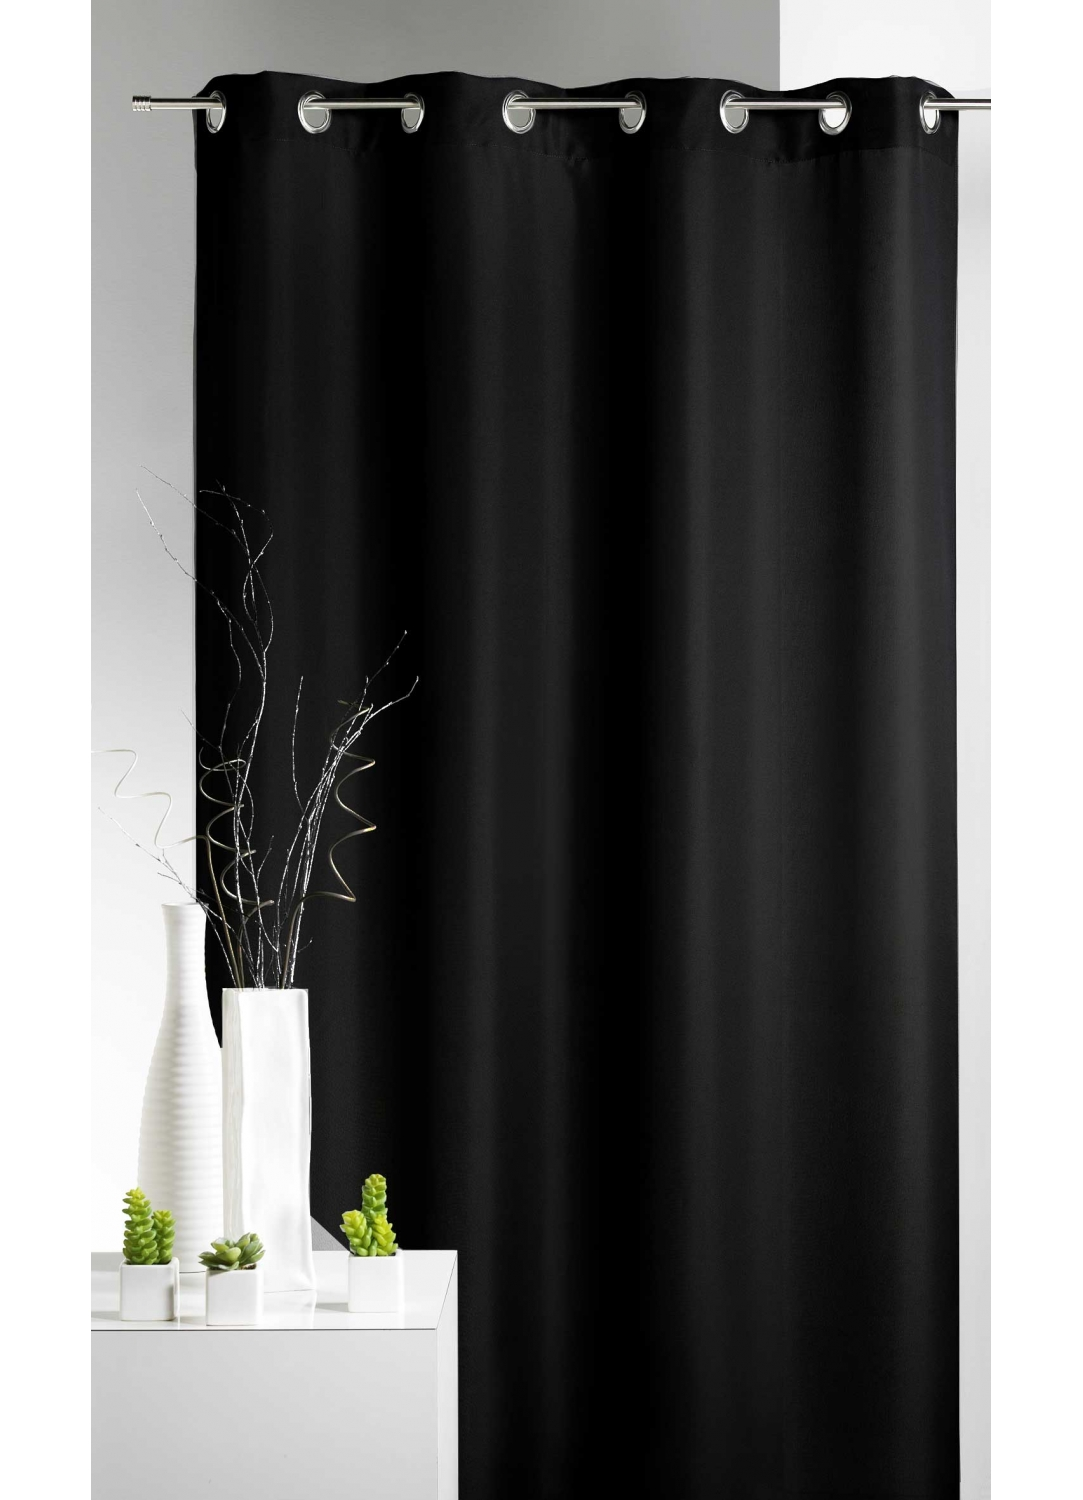 rideau 80 occultant uni noir maldives bambou ecru piment anthracite. Black Bedroom Furniture Sets. Home Design Ideas